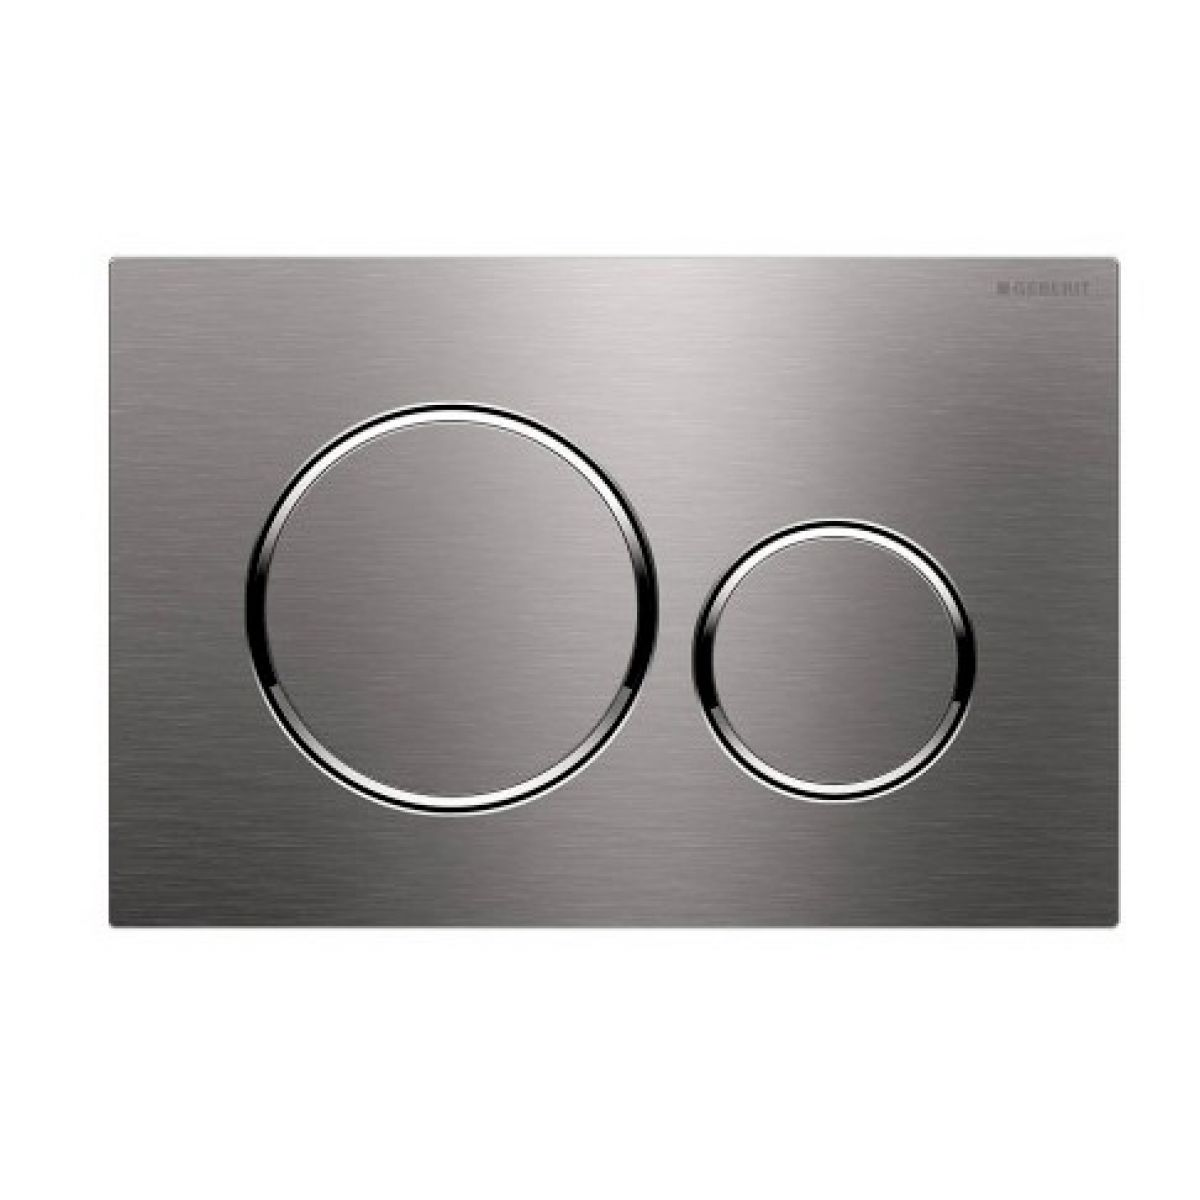 Geberit sigma 20 dual flush cistern plate uk bathrooms for Geberit flush